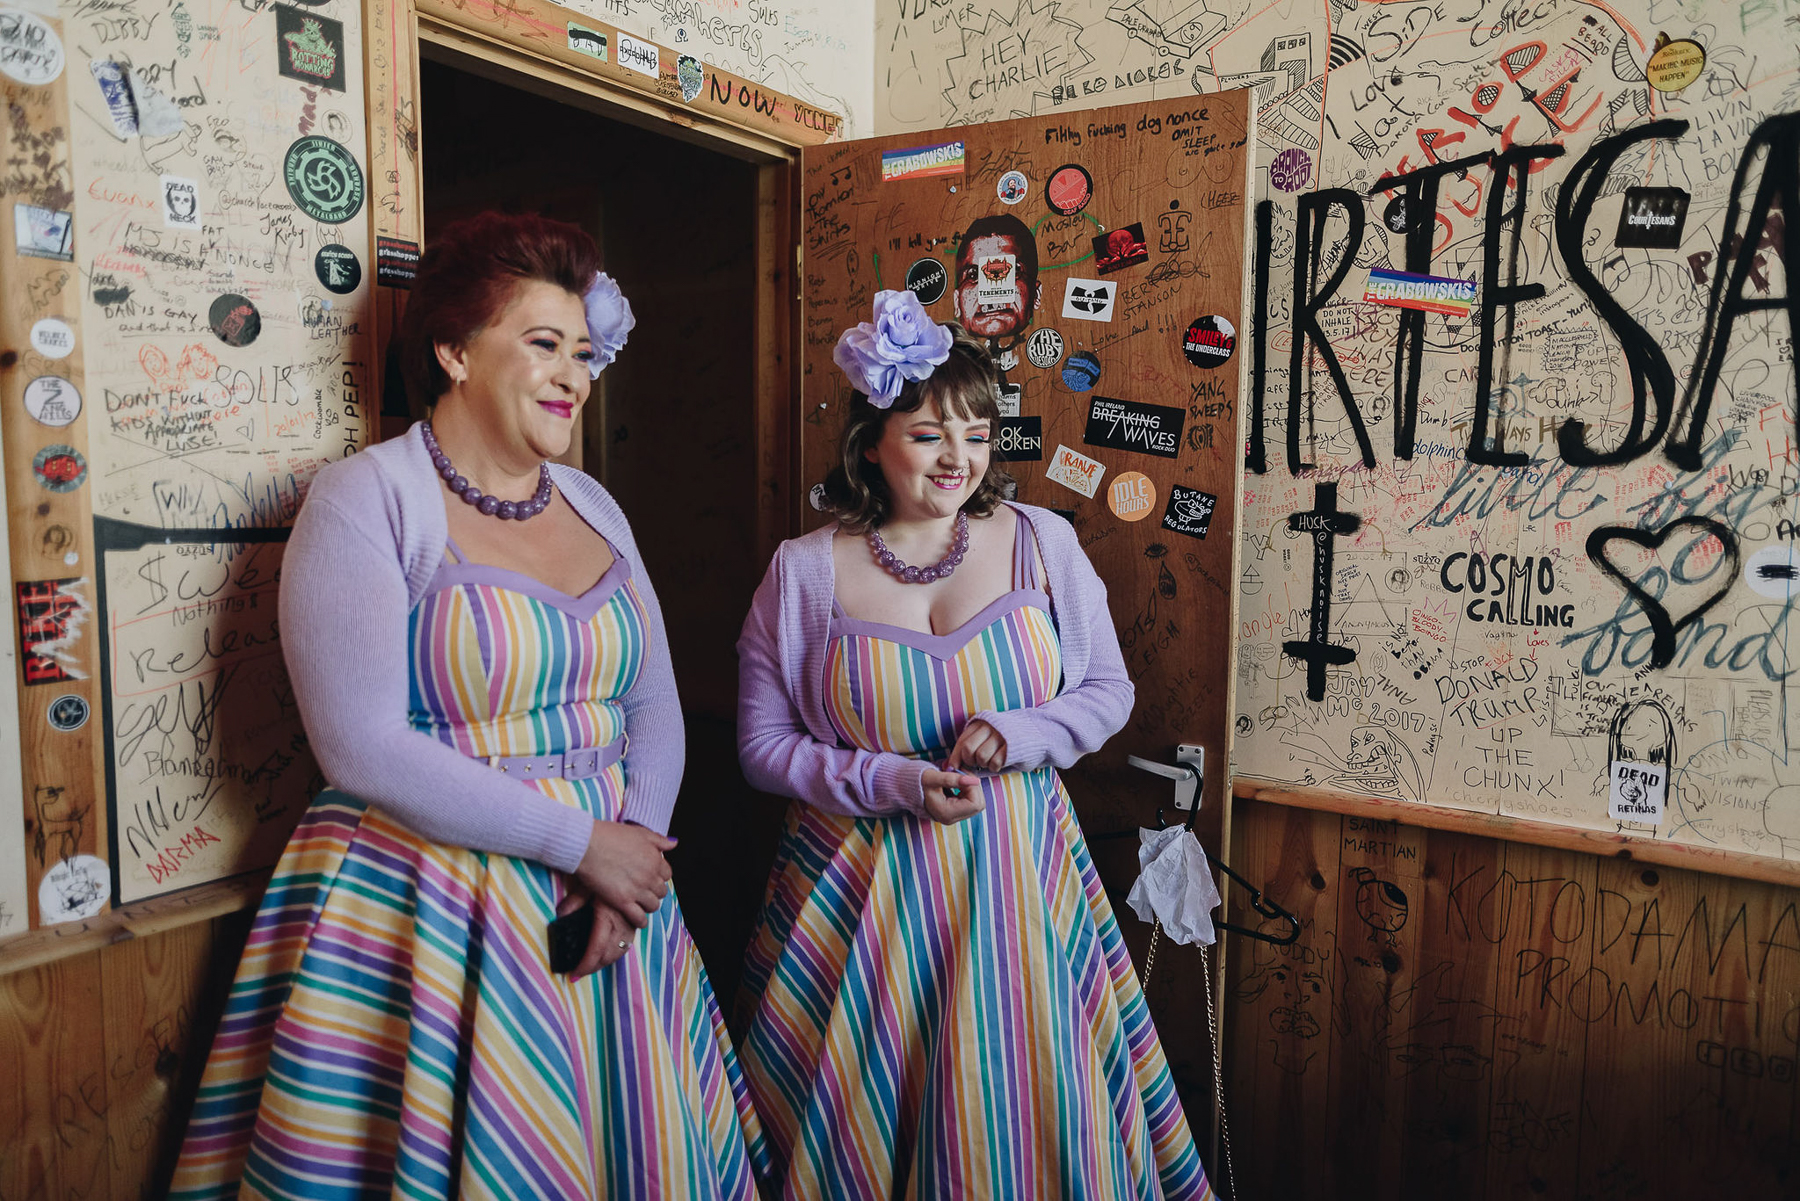 Alternative_Manchester_Northern_Quarter_Wedding_Photography_The_Pin-Up_Bride-20.jpg